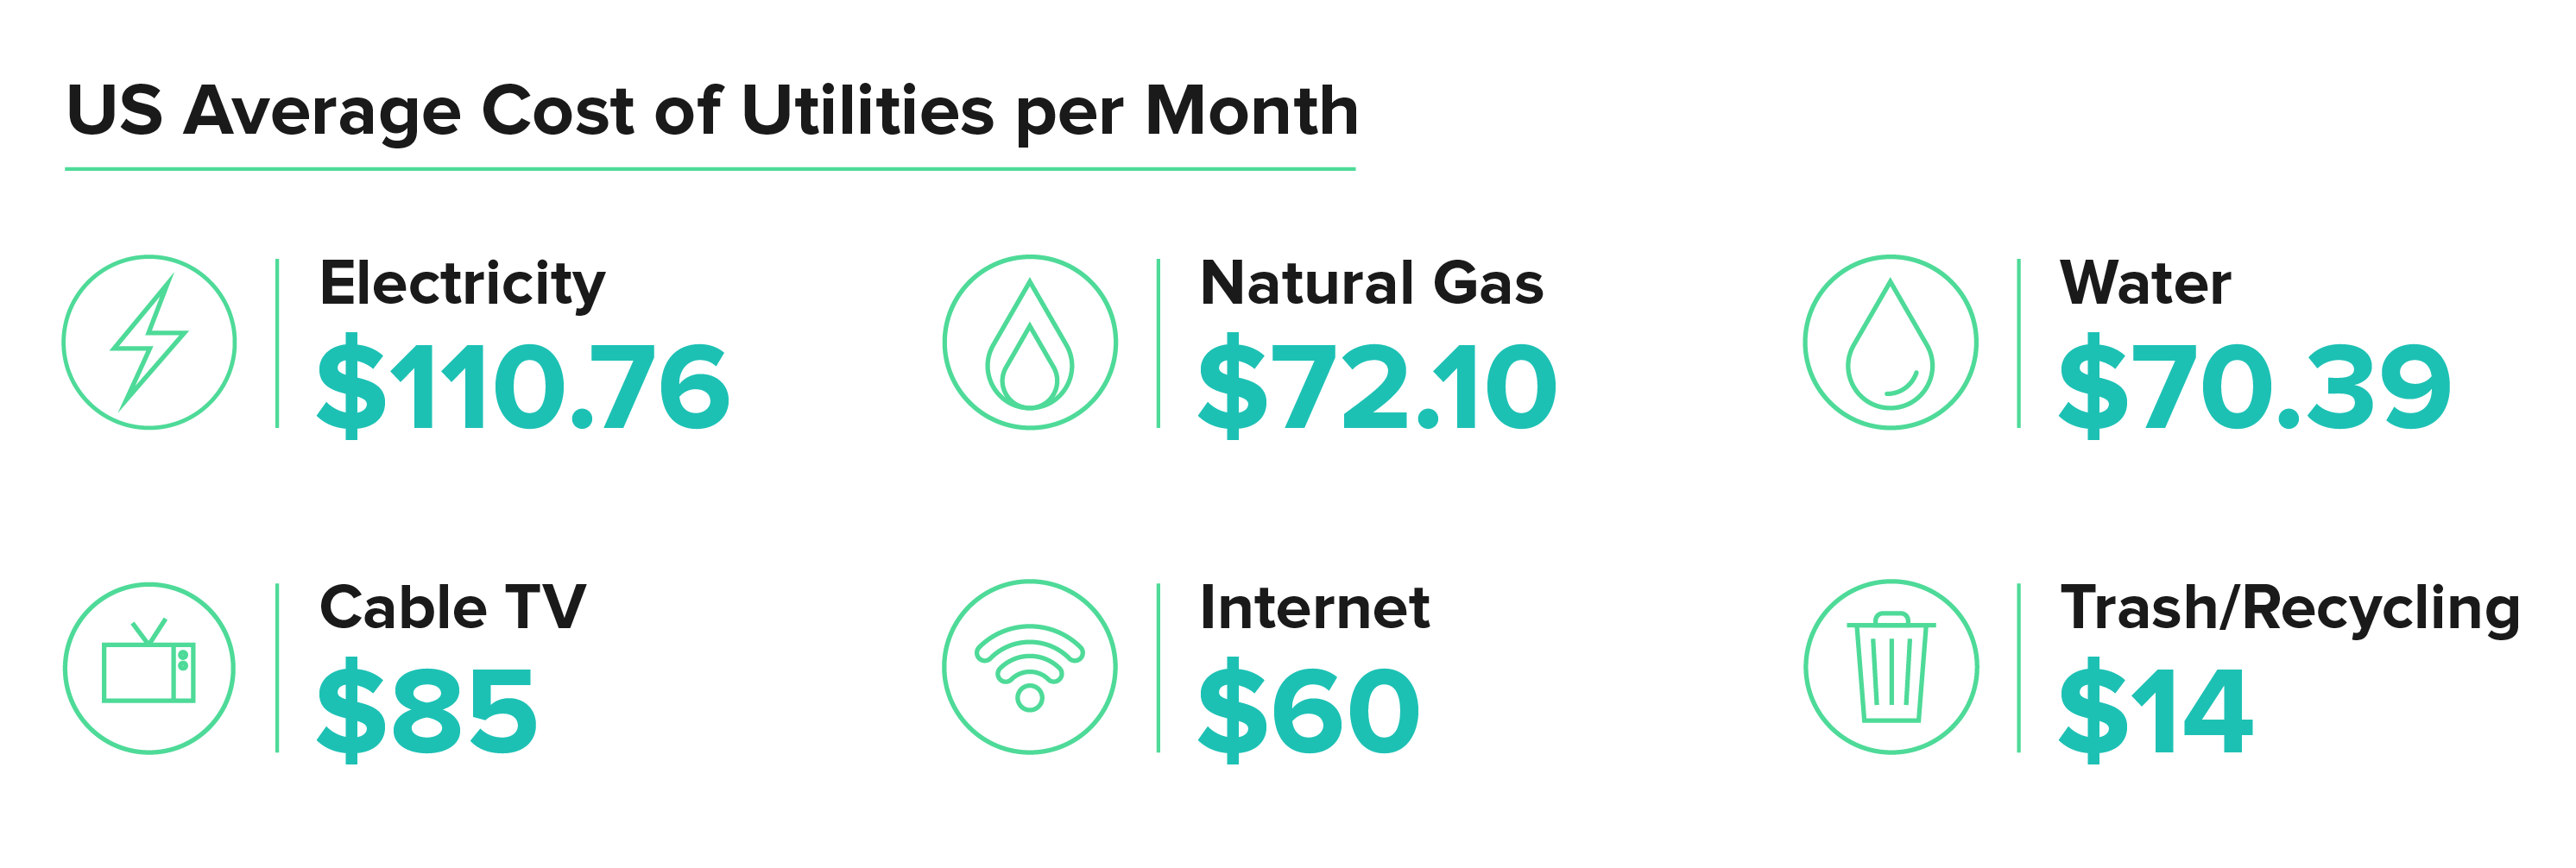 US Average Cost of Utilities per Month